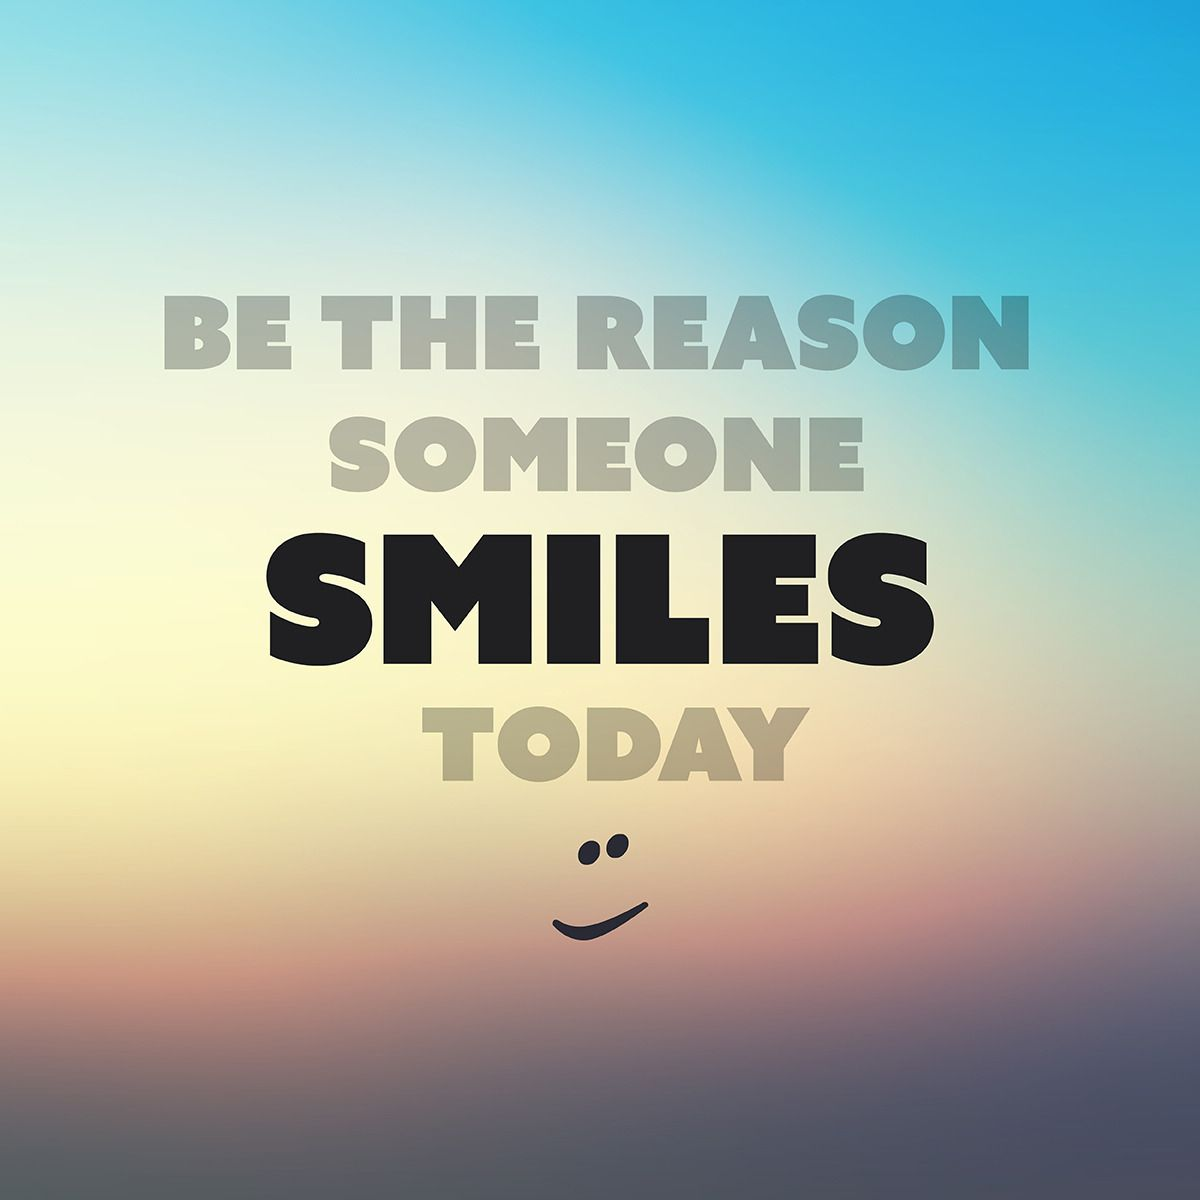 Let us help you smile by running your social media